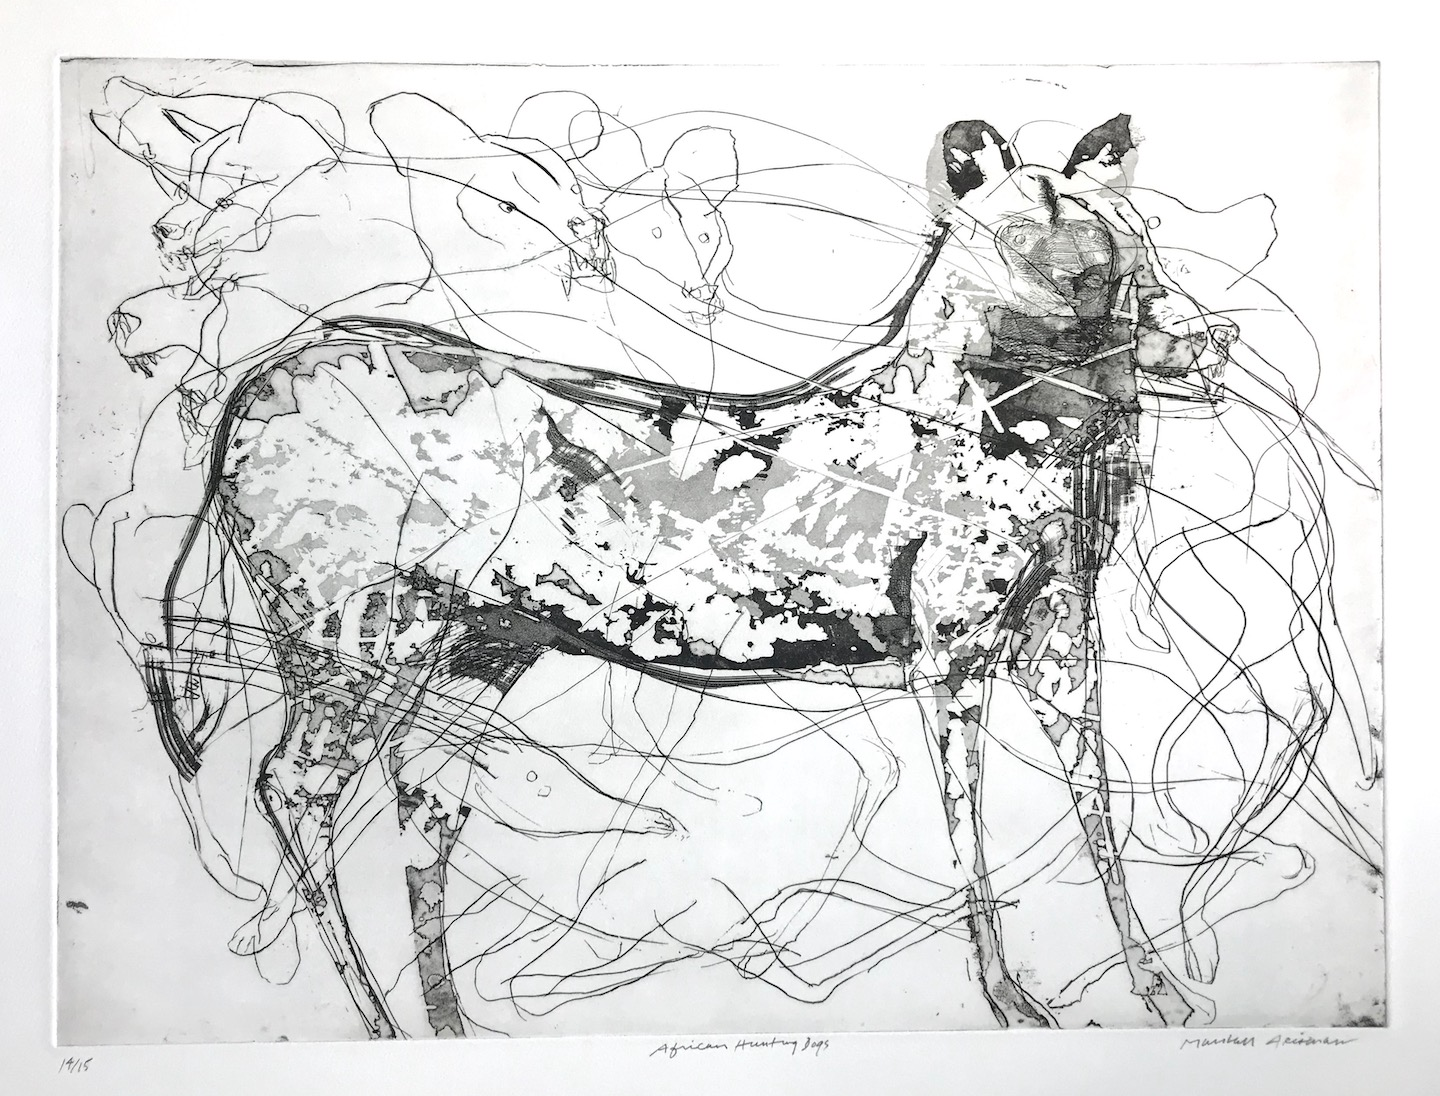 African Hunting Dog, 2007